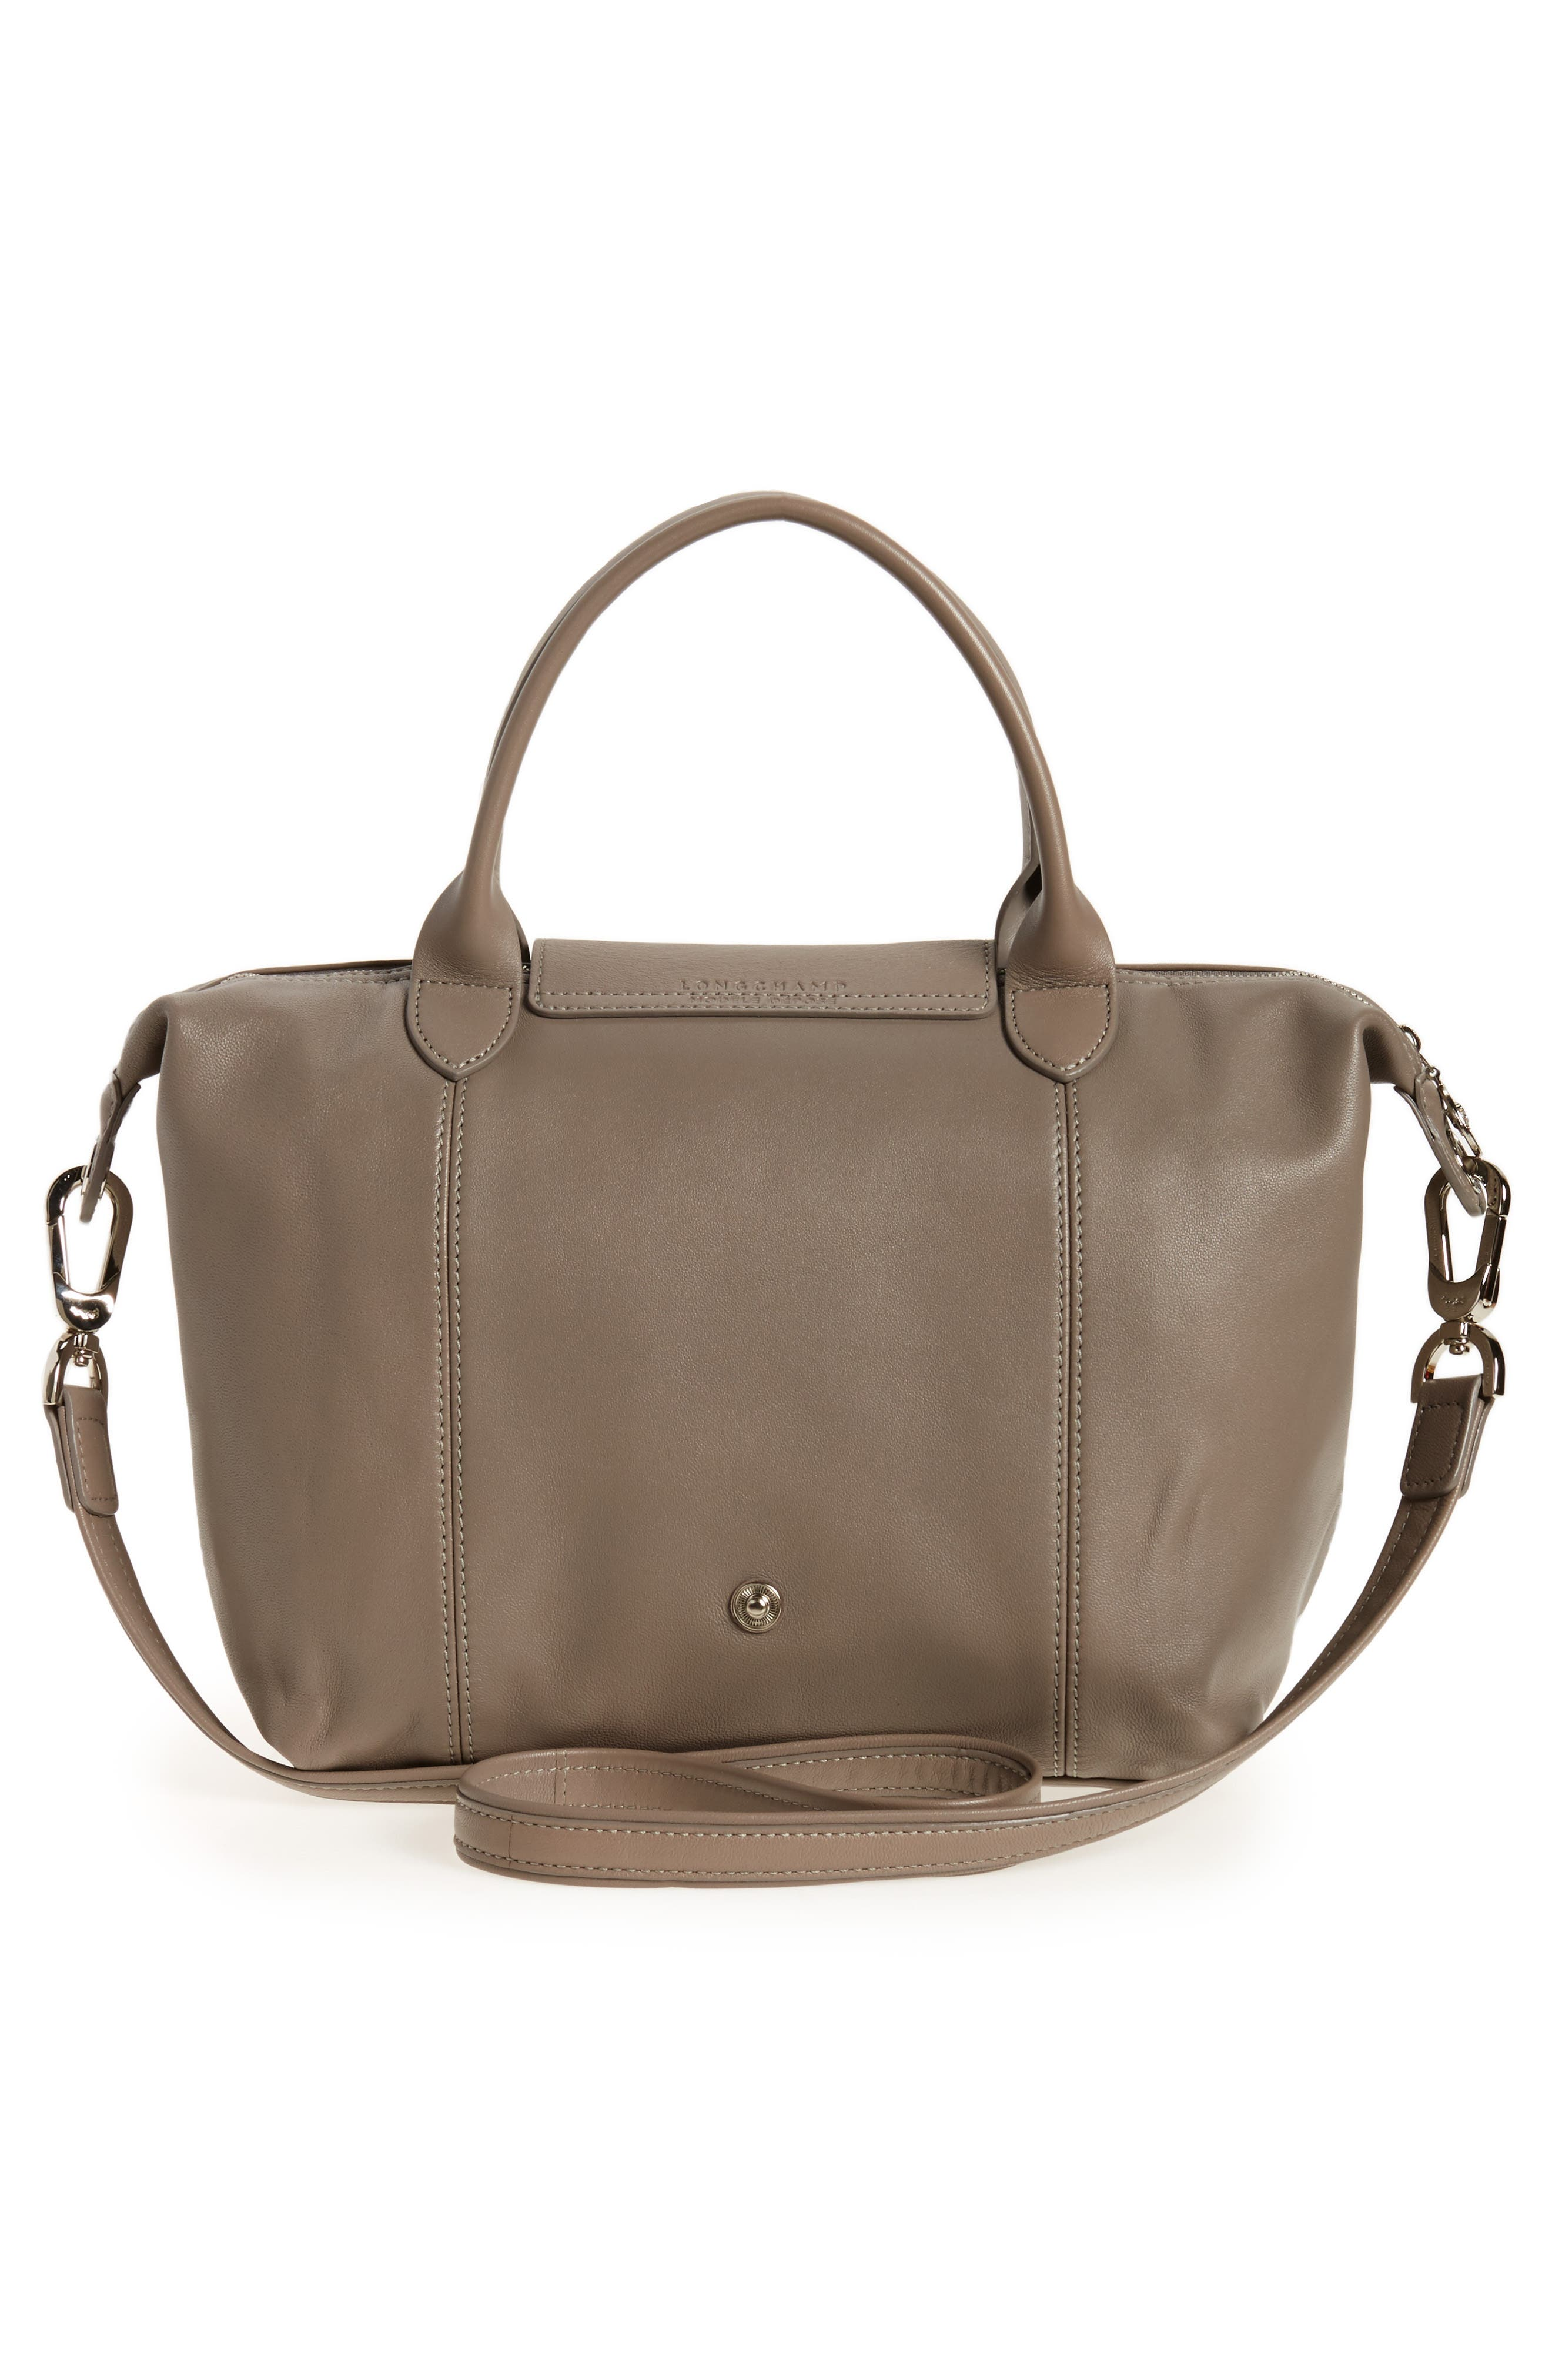 Small 'Le Pliage Cuir' Leather Top Handle Tote,                             Alternate thumbnail 43, color,